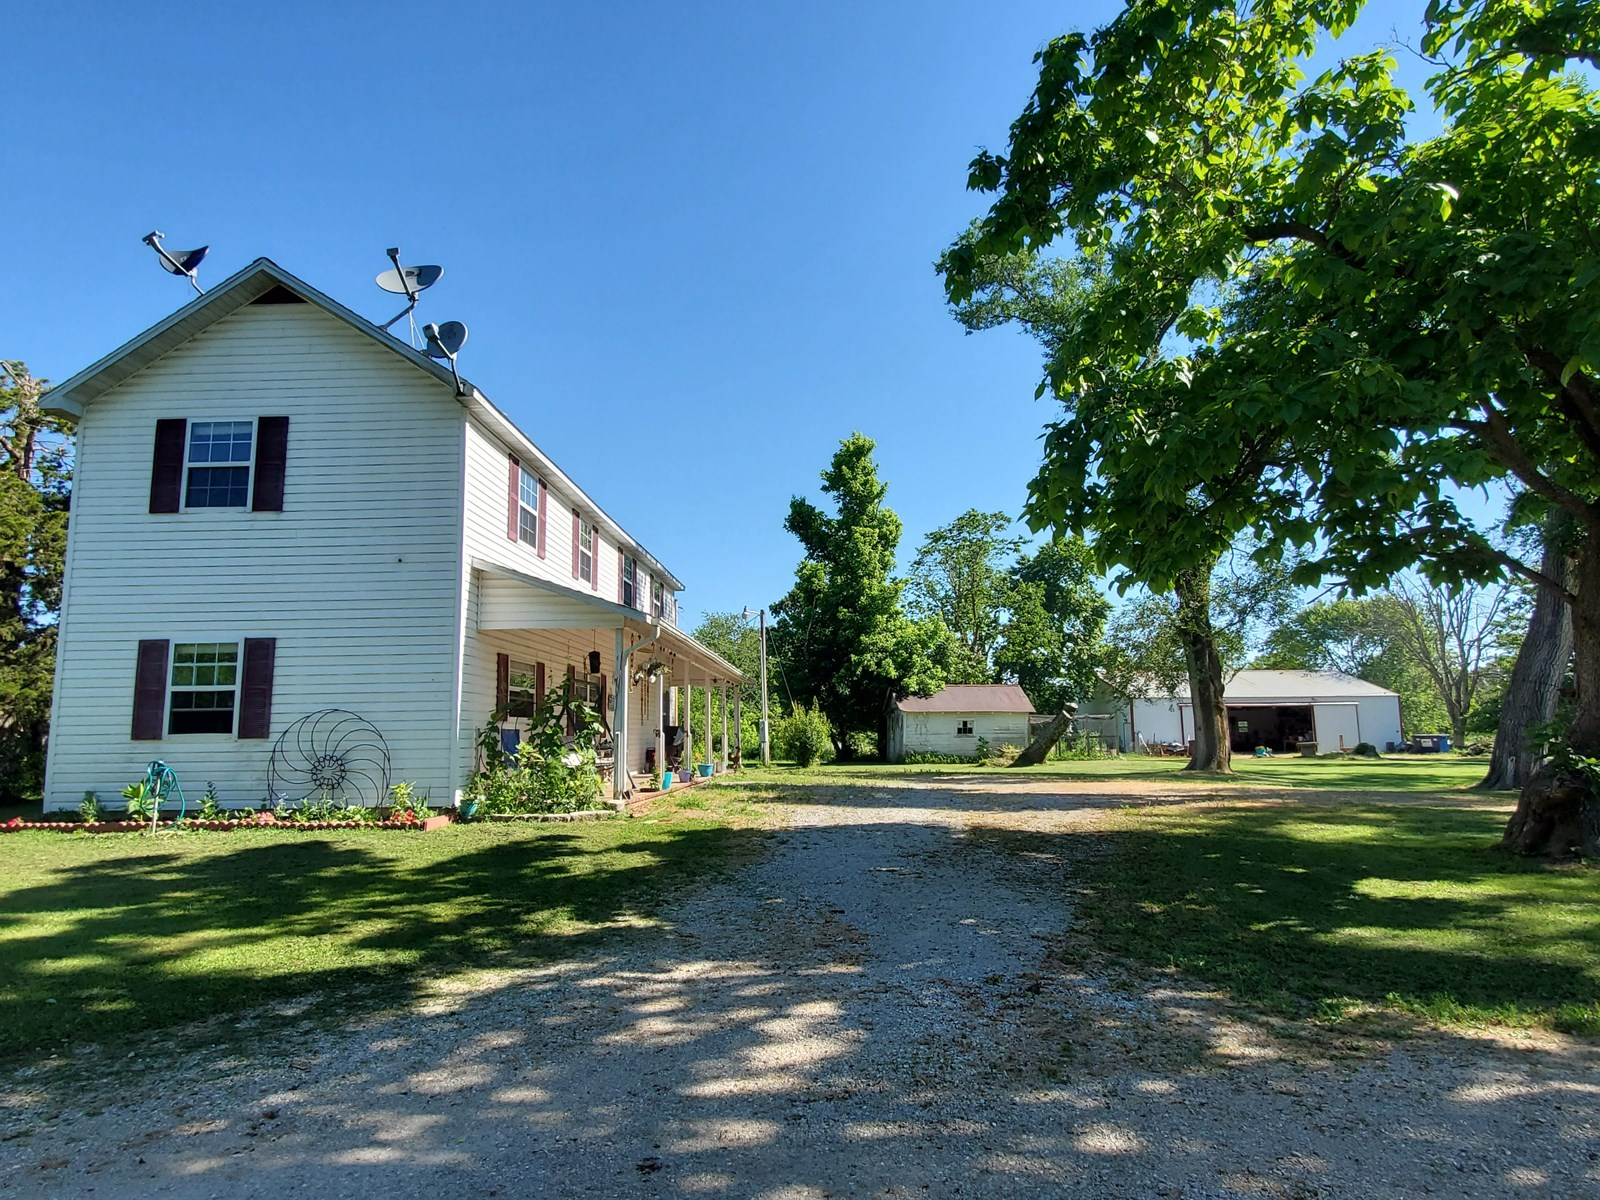 Hobby Farm for Sale in South Central Missouri